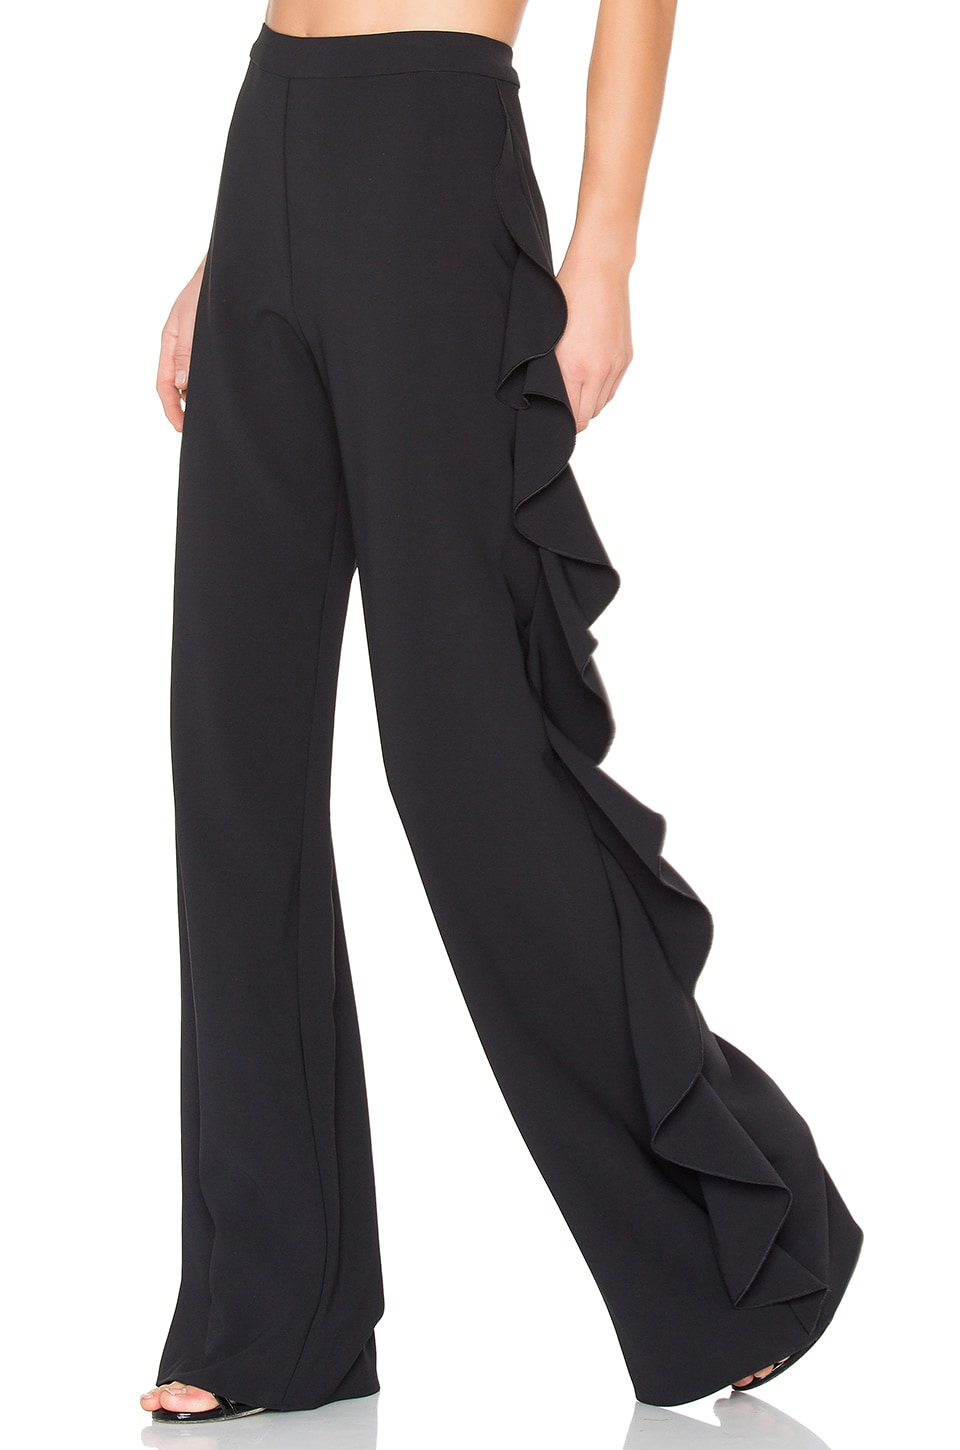 Alexis Karlina Pant in Black